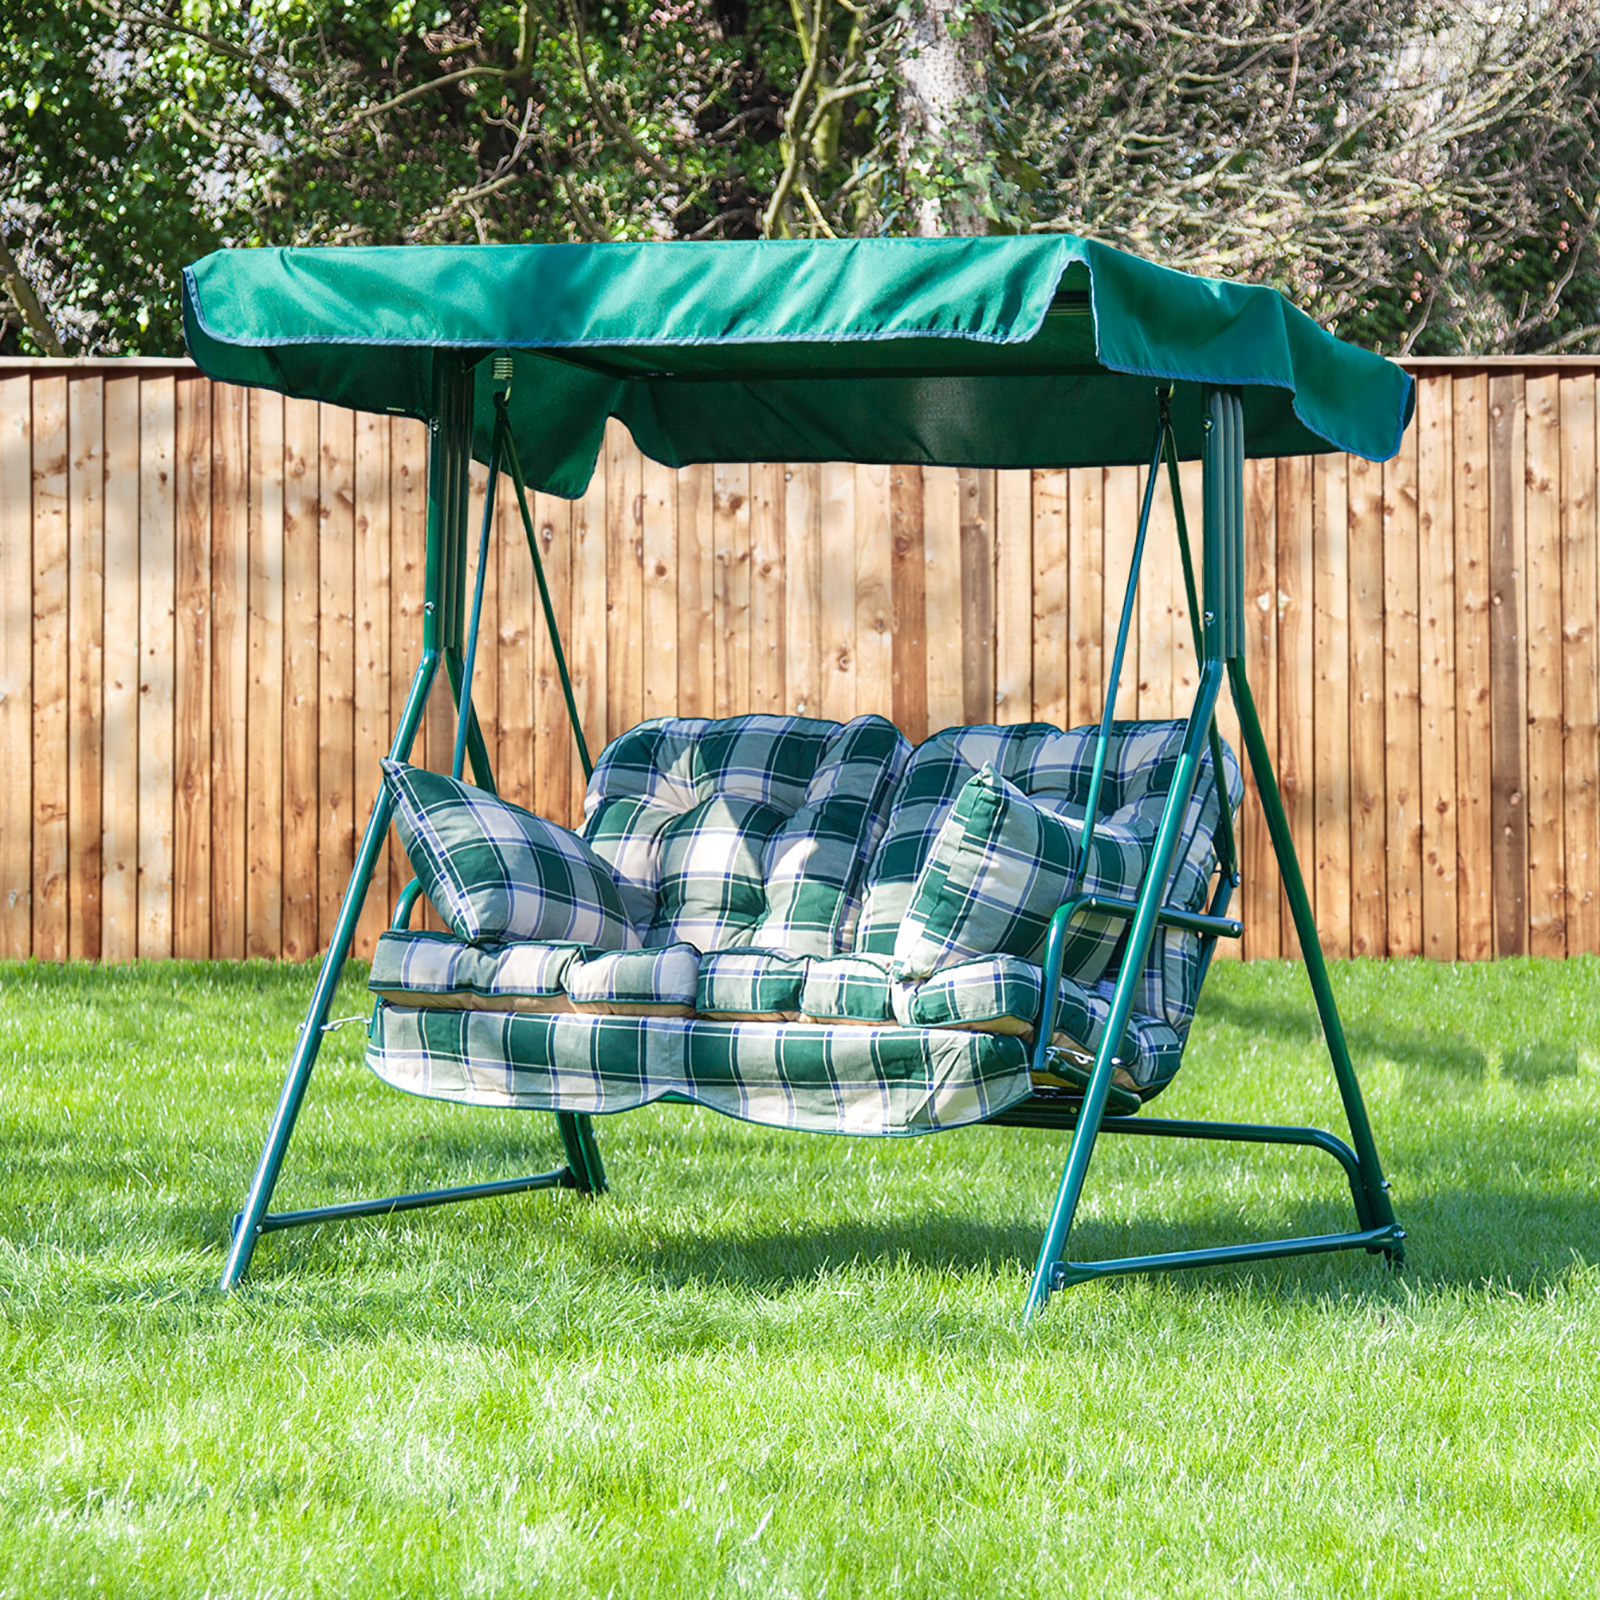 Alfresia Luxury Garden Swing Seat Cushions (2 Seater) | eBay